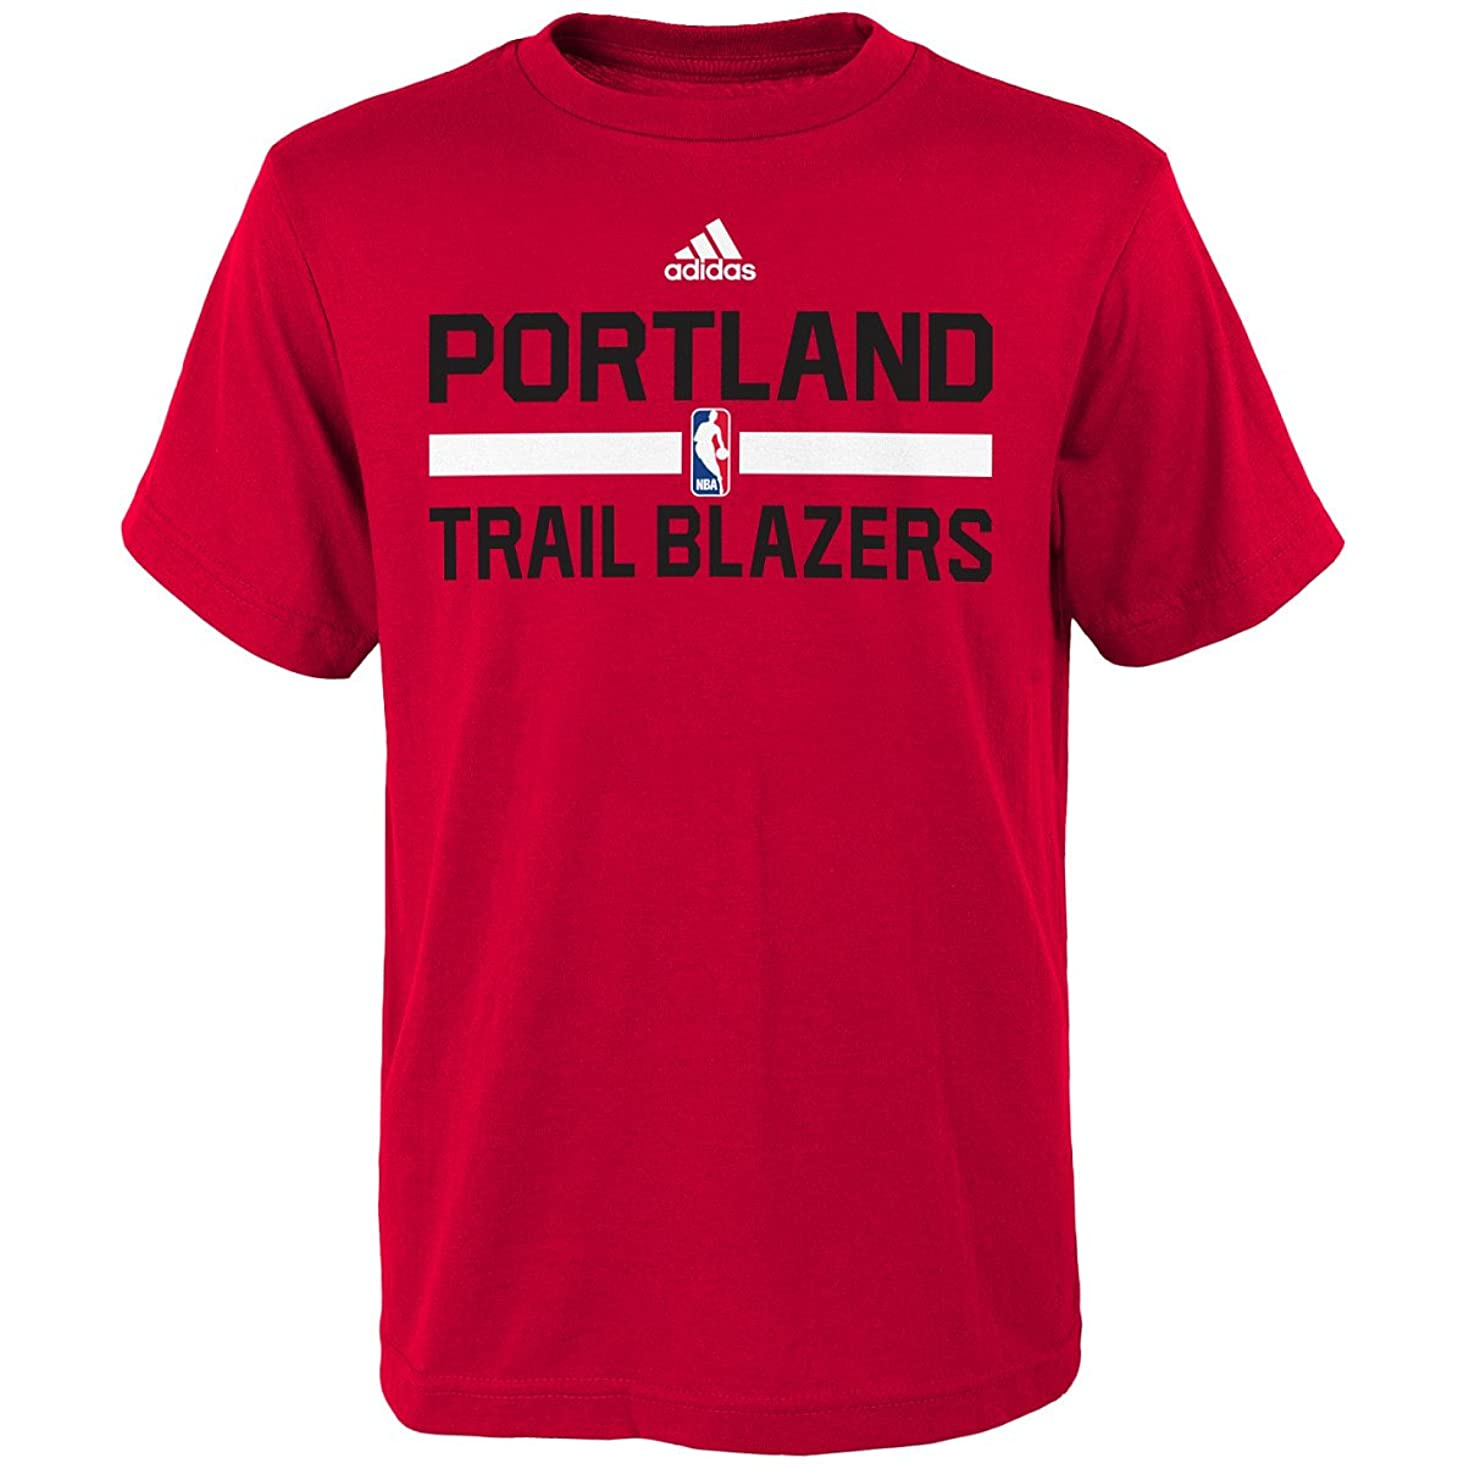 Portland Trail Blazers Adidas Red Practice Youth T-Shirt